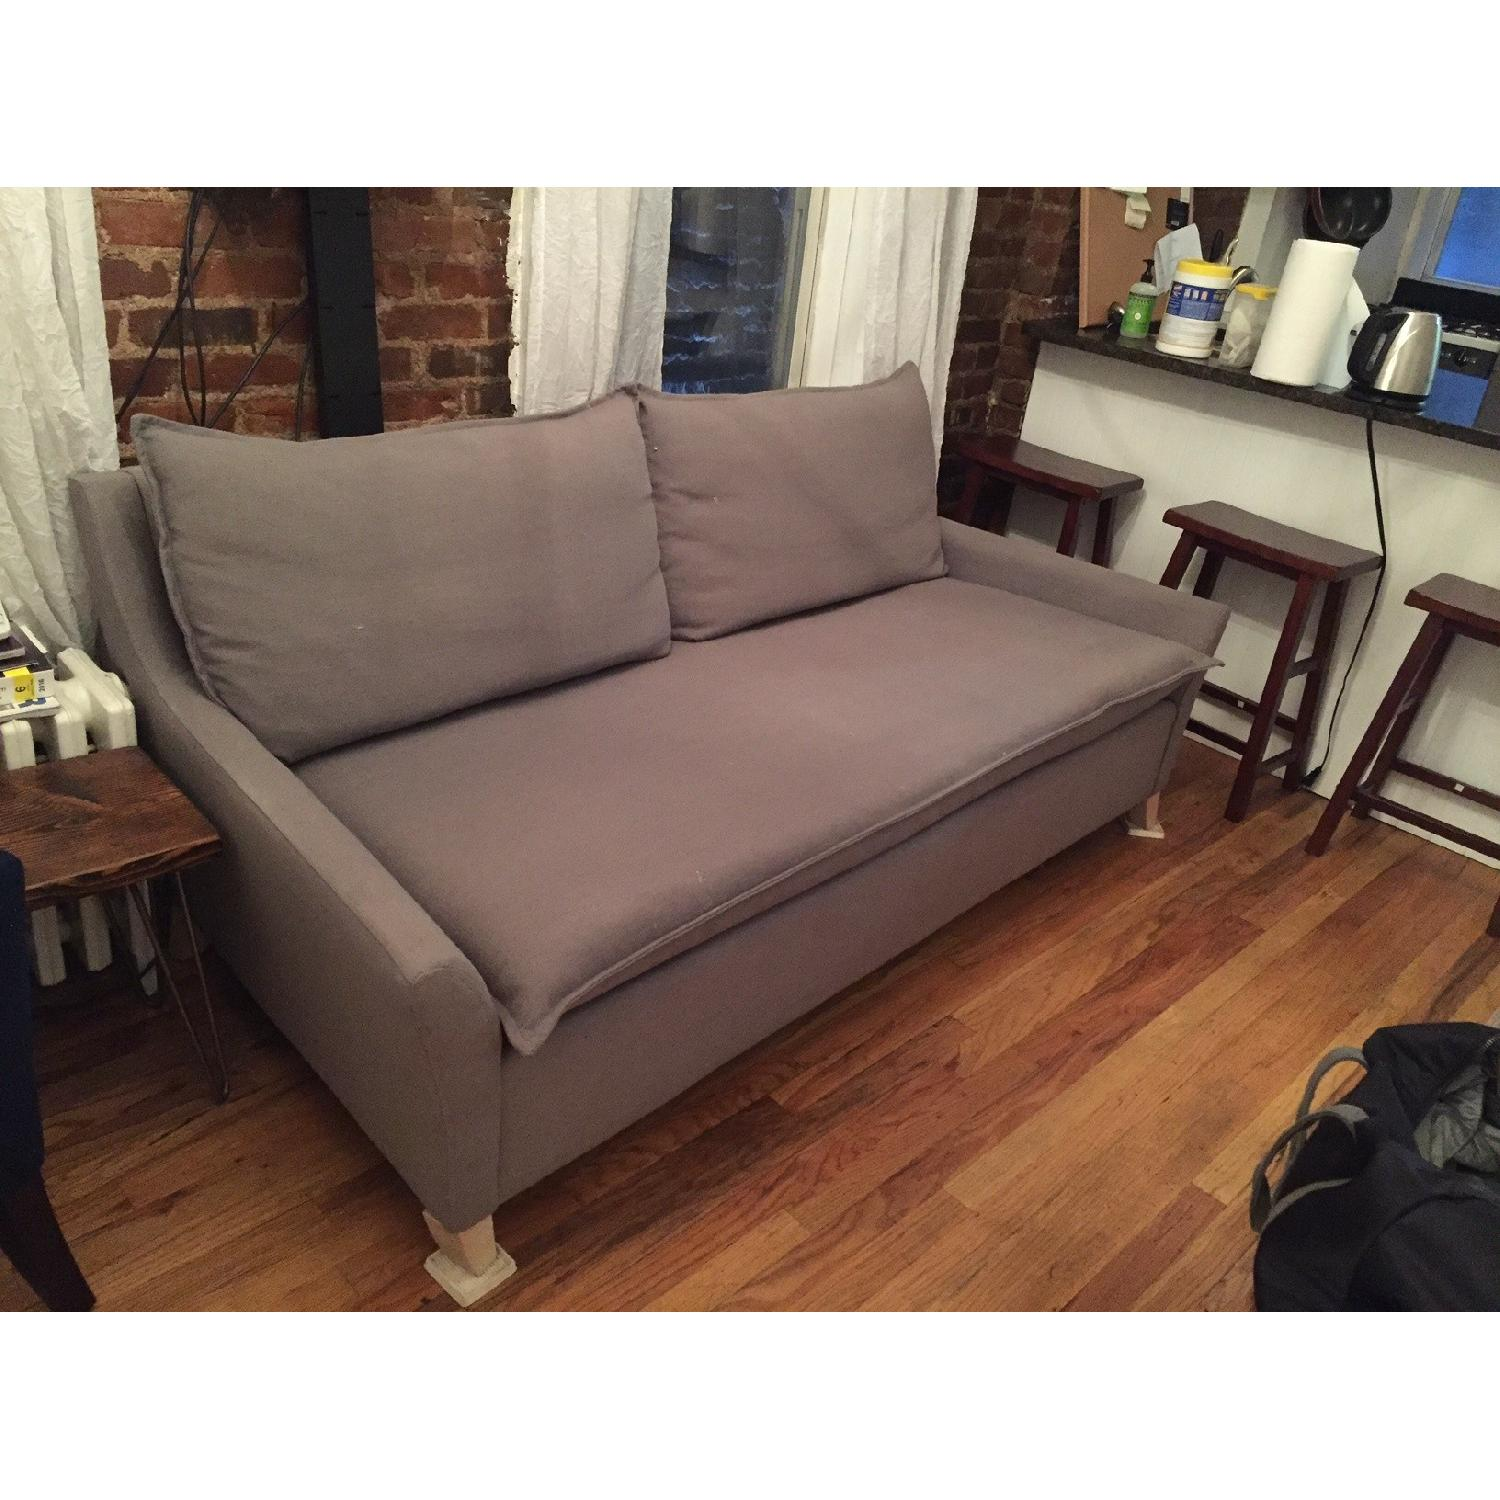 West Elm Bliss Down-Filled Sofa - image-1